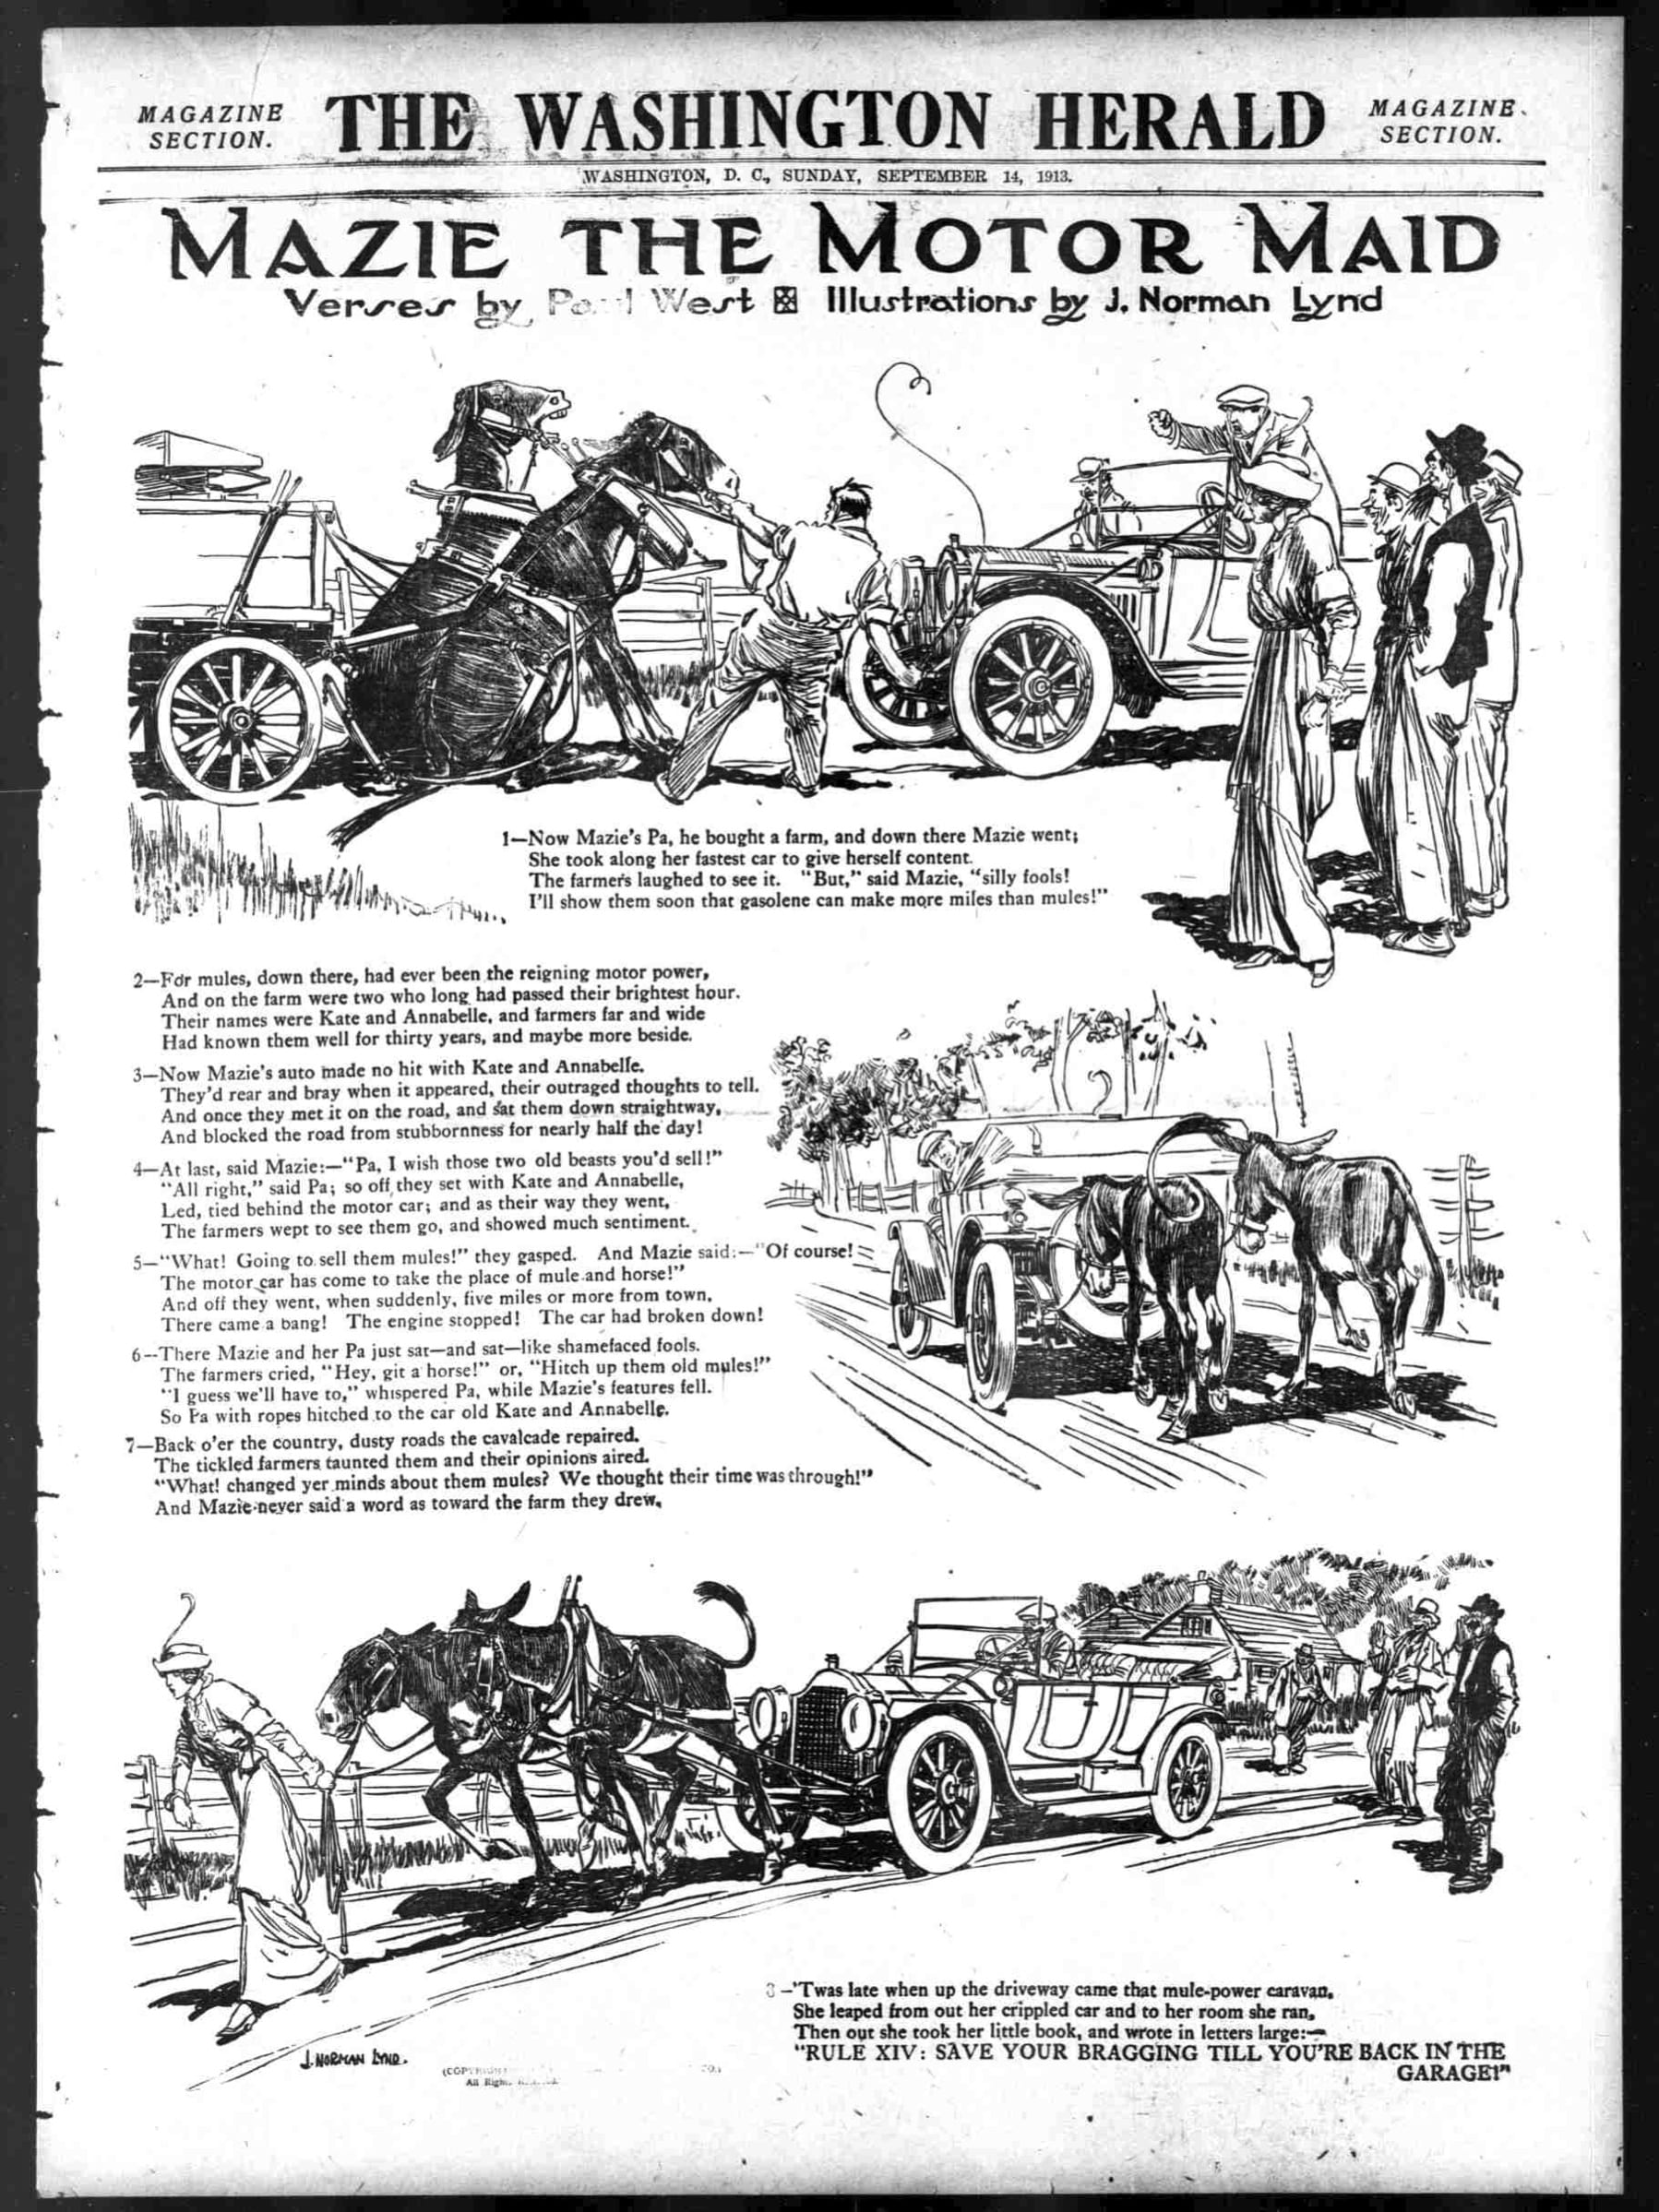 September 14th, 1913: Mazie the Motor Maid